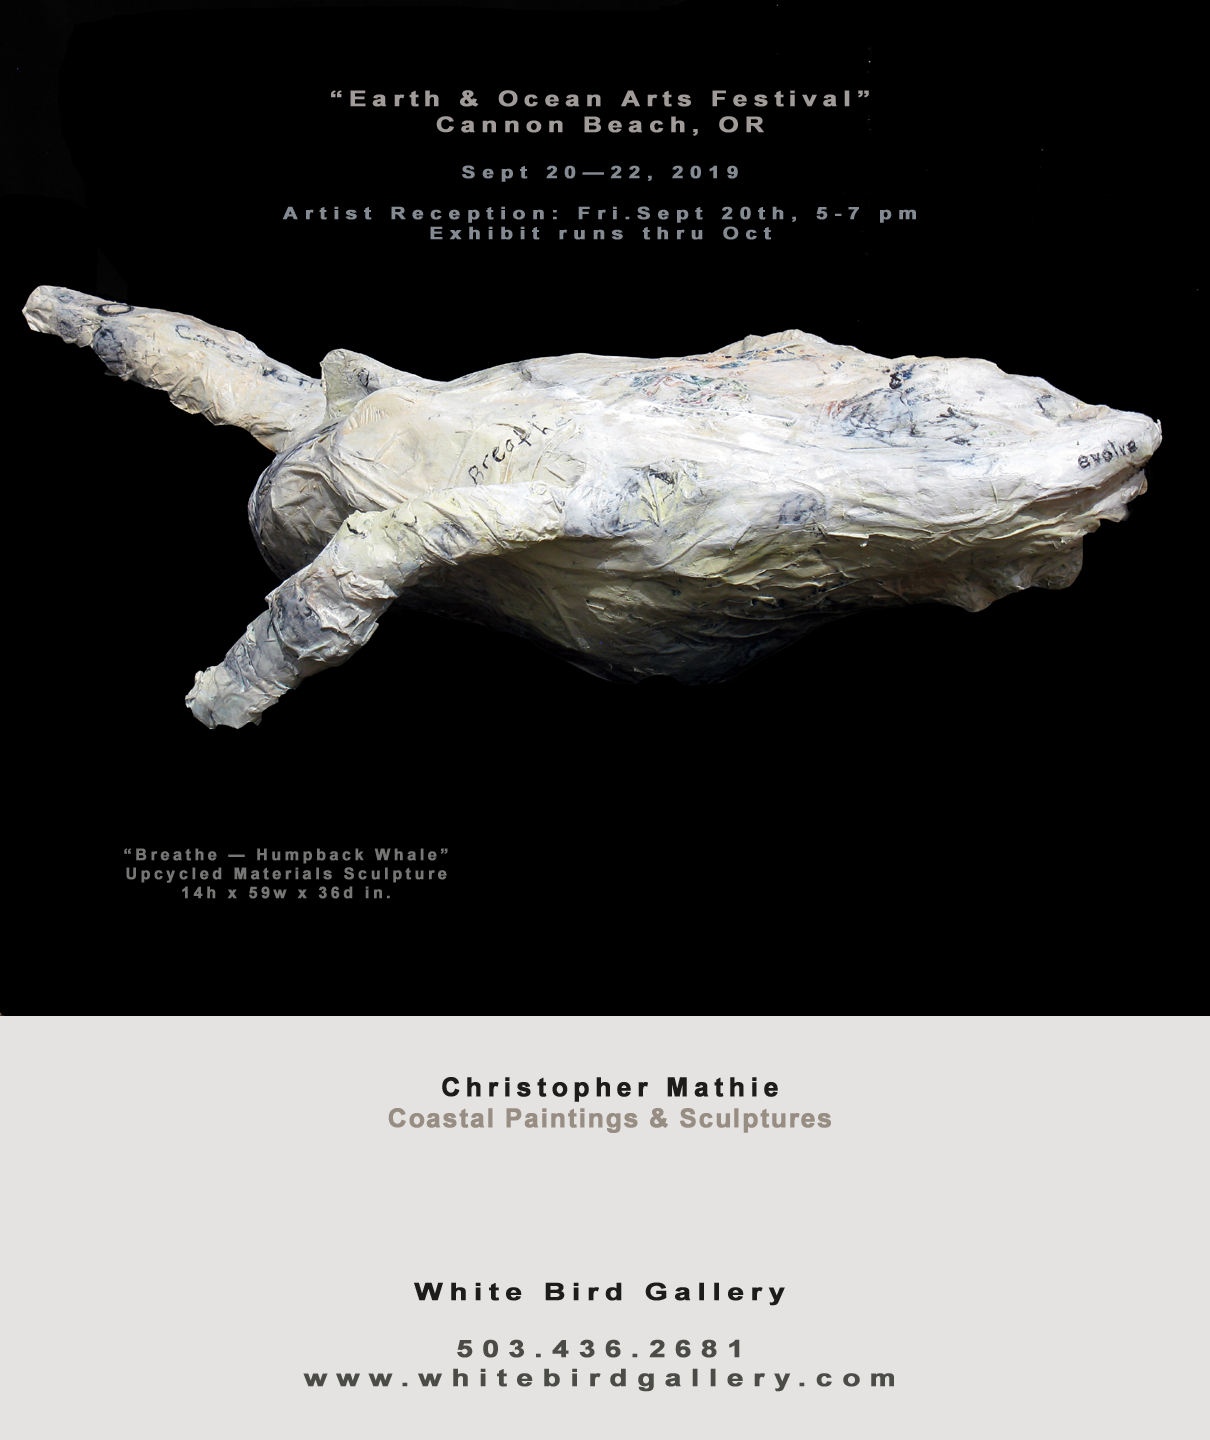 I'm excited to debut my new sculptures employing a new medium and technique developed for this show!